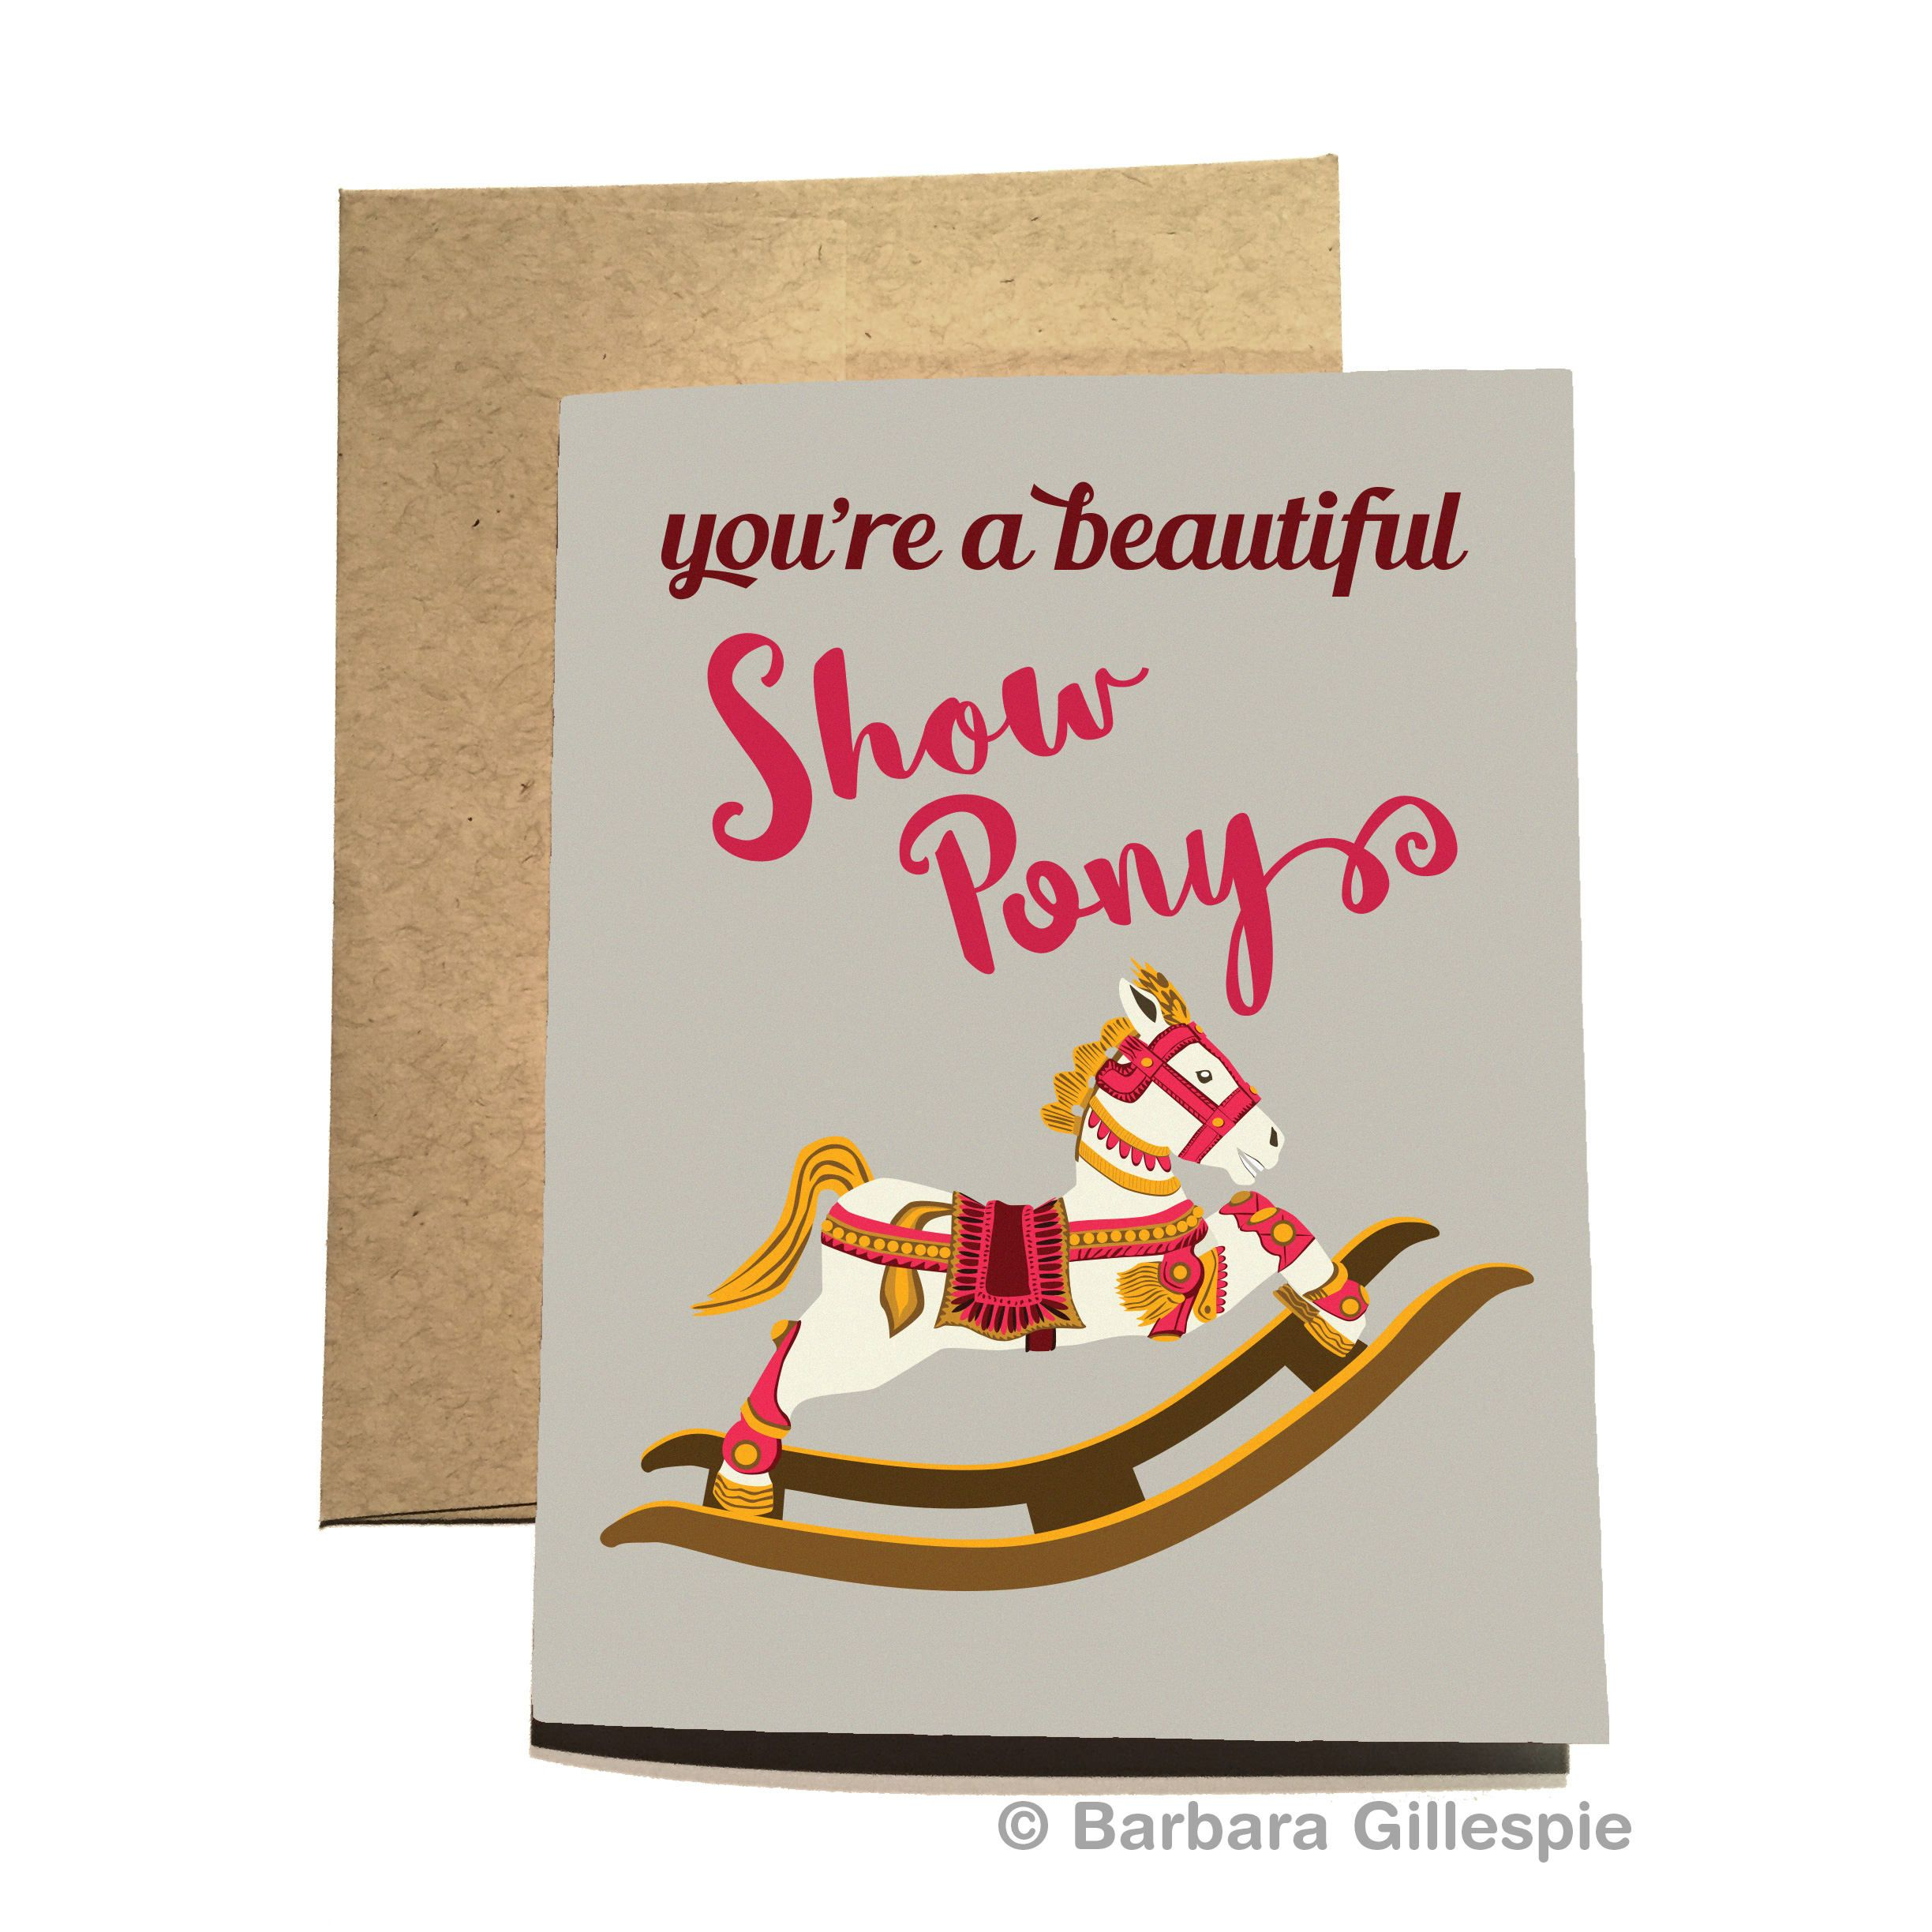 Show pony support card youre a beautiful show pony admiration show pony support card youre a beautiful show pony admiration card m4hsunfo